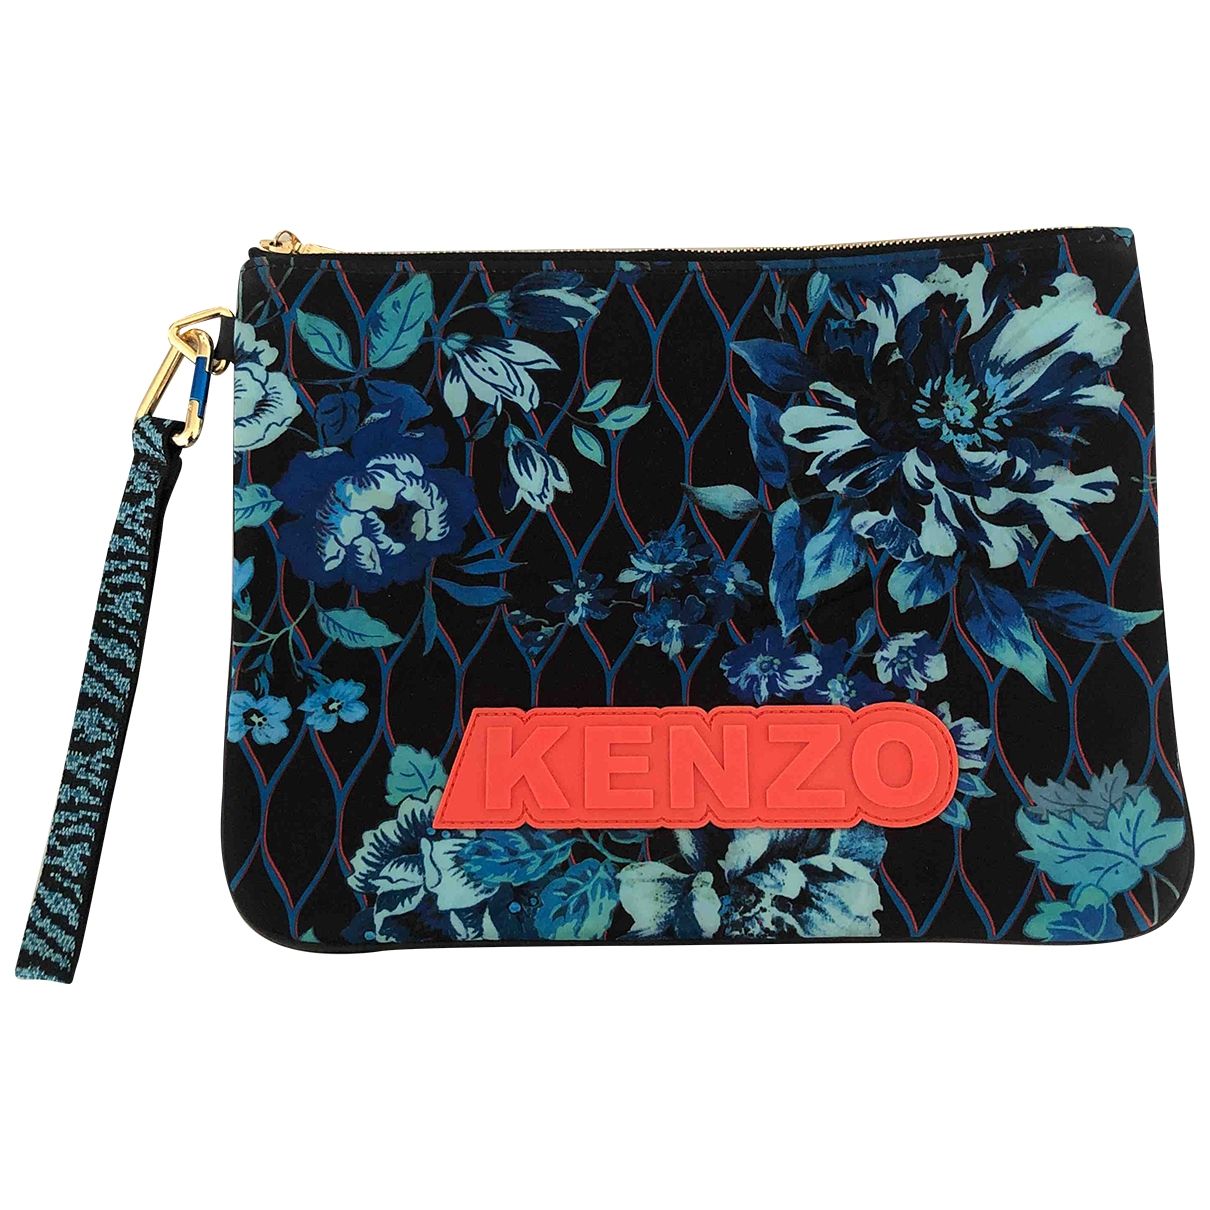 Kenzo X H&m \N Clutch in  Bunt Polyester